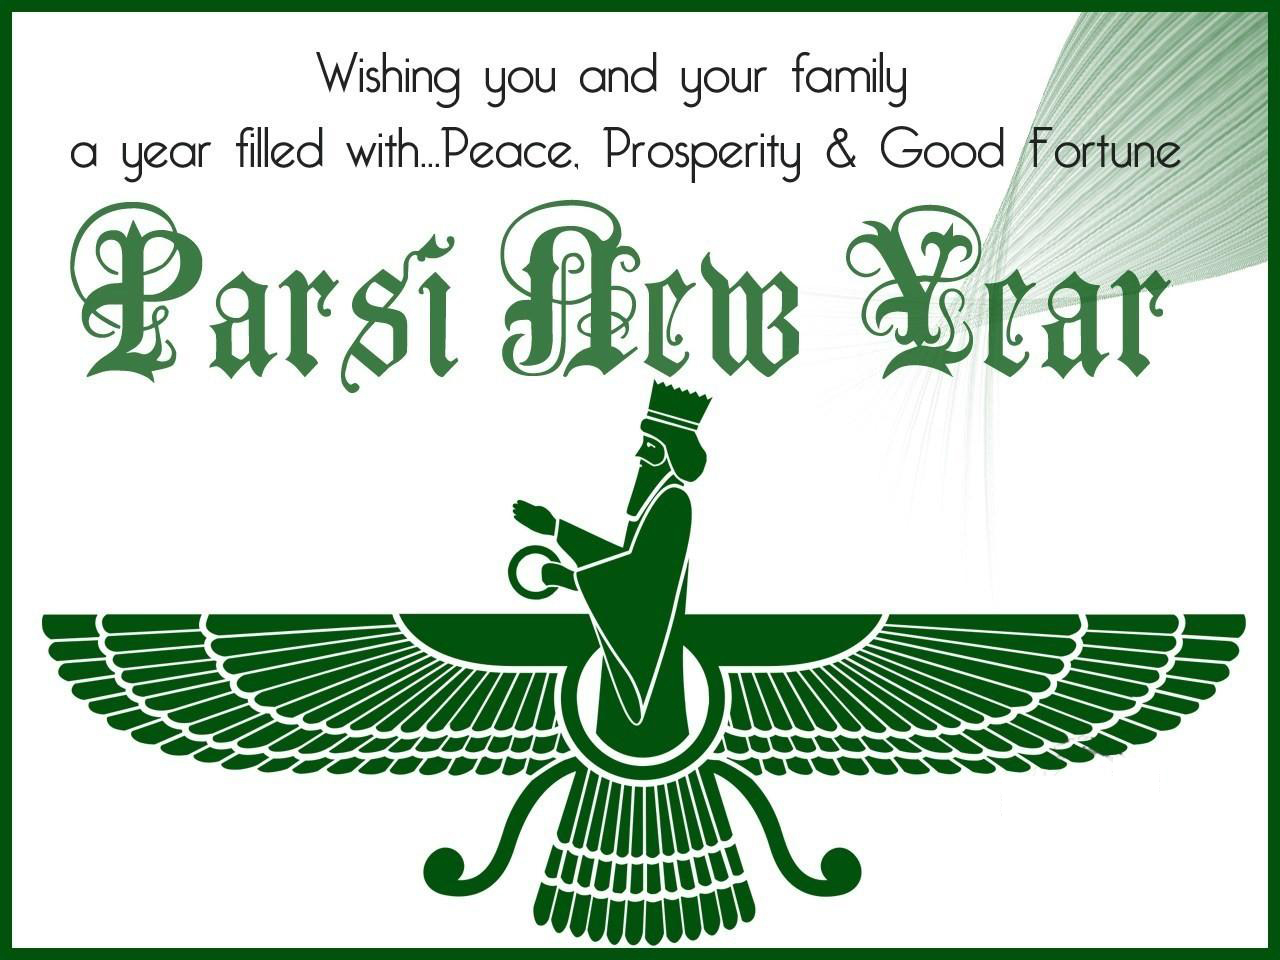 Pateti happy parsinavroz new year 2016 greetings cards images pic pateti happy parsi navroz new year 2016 greetings cards images pictures 1 kristyandbryce Choice Image